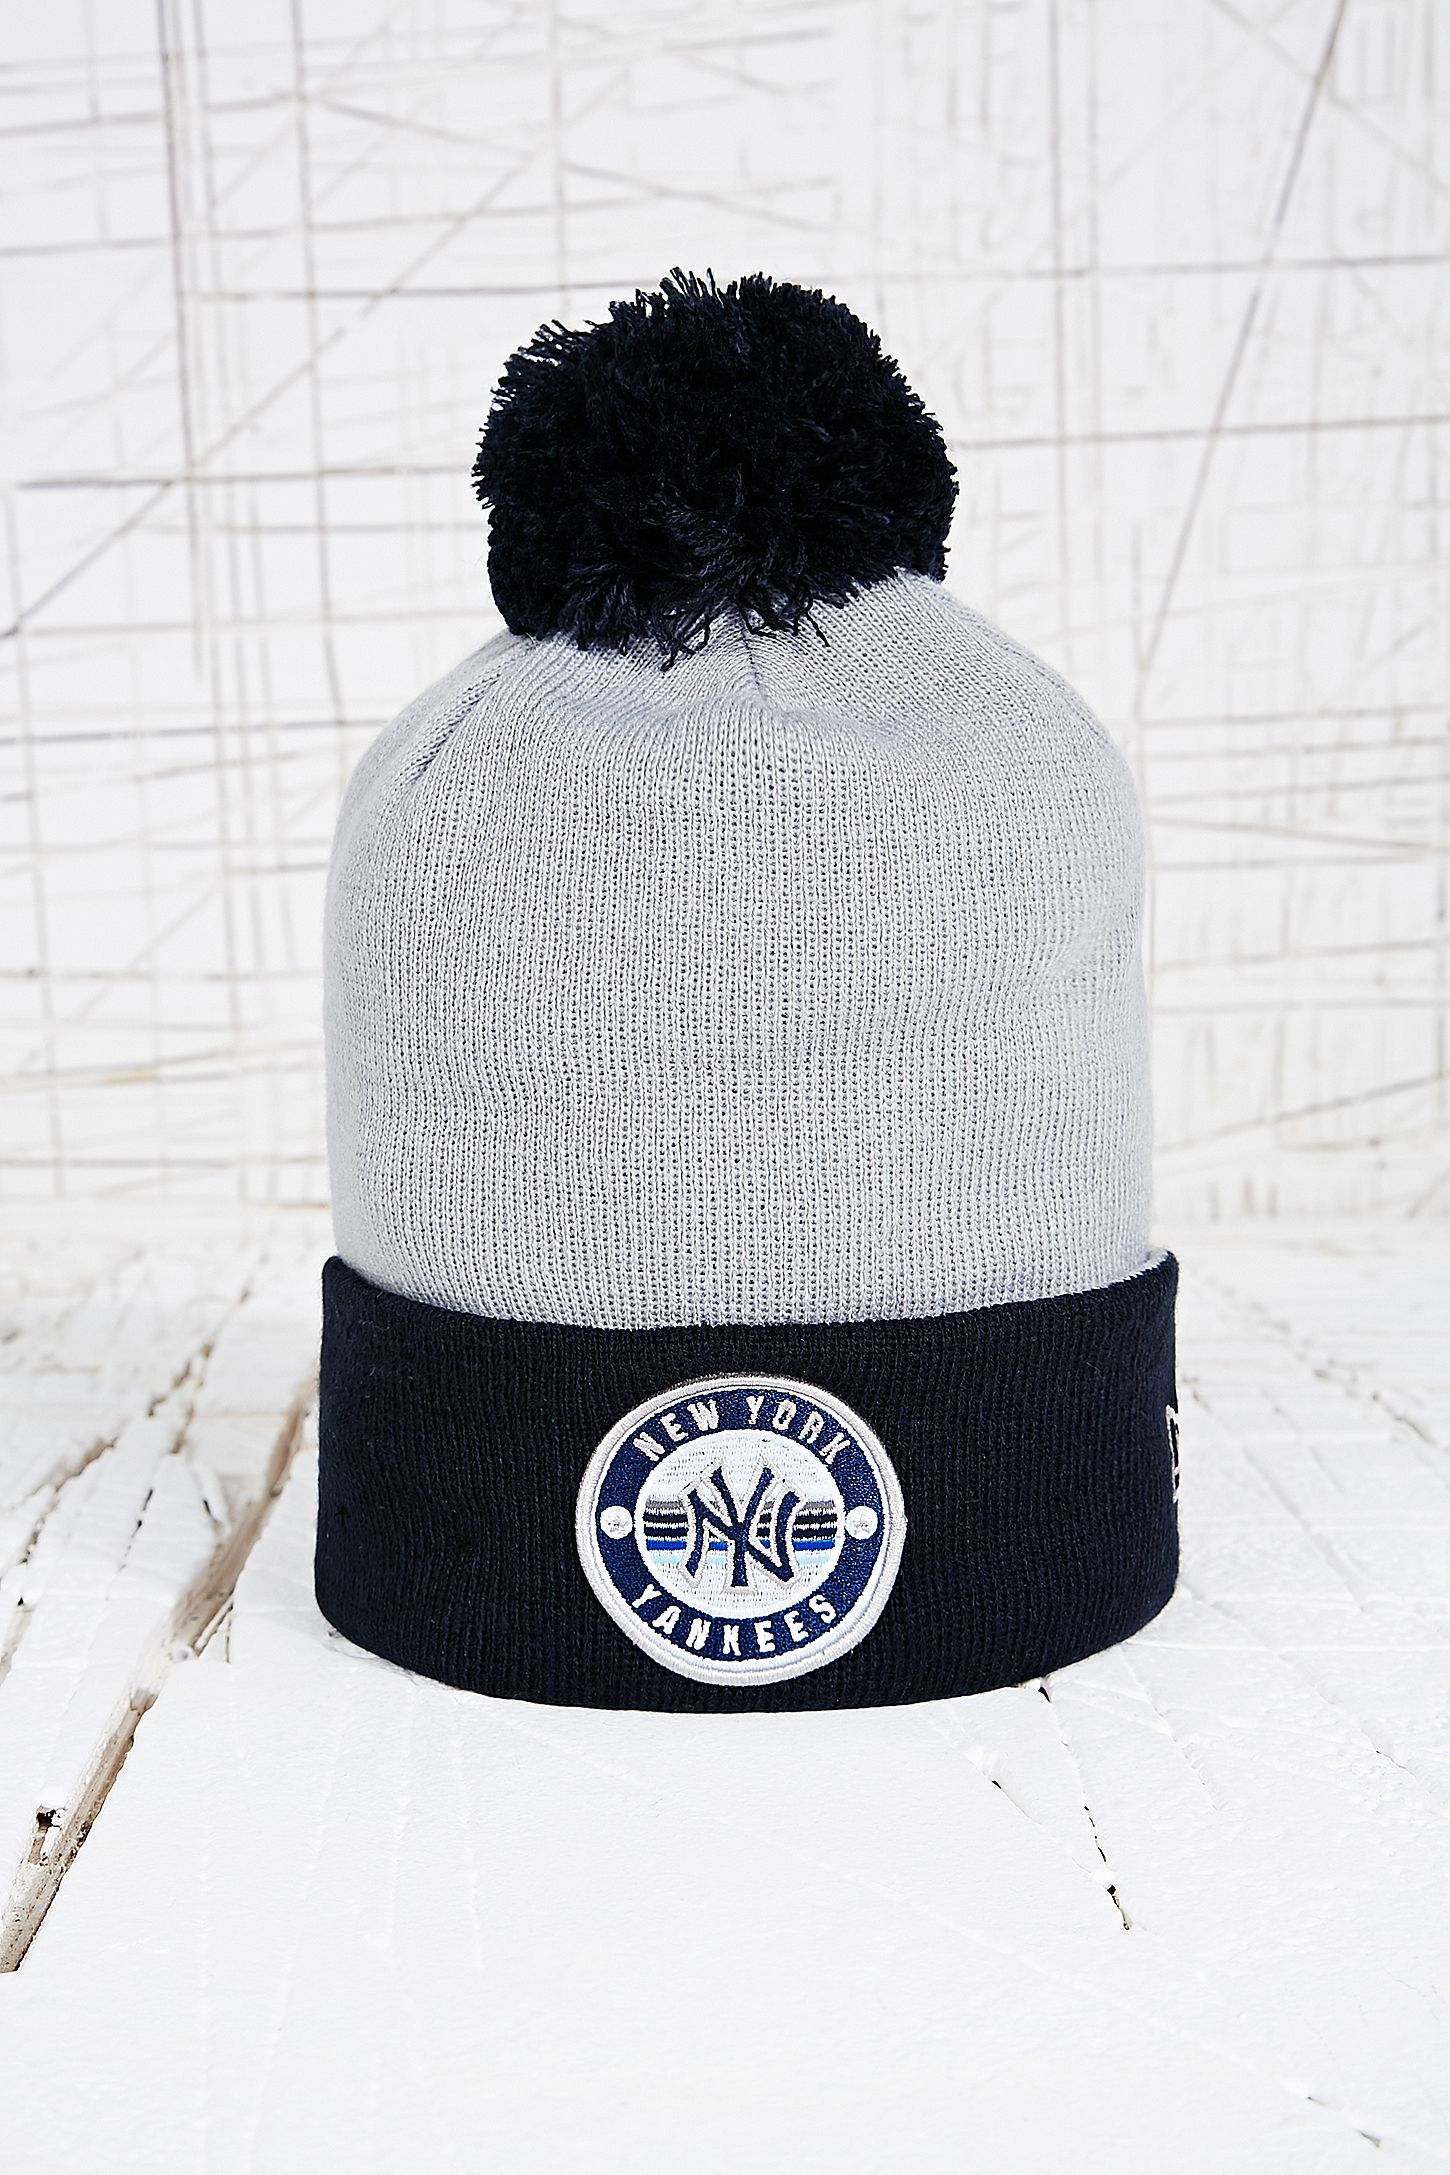 76cd52c3d36 New Era NY Yankees Bobble Beanie Hat. Click on image to zoom. Hover to  zoom. Double Tap to Zoom